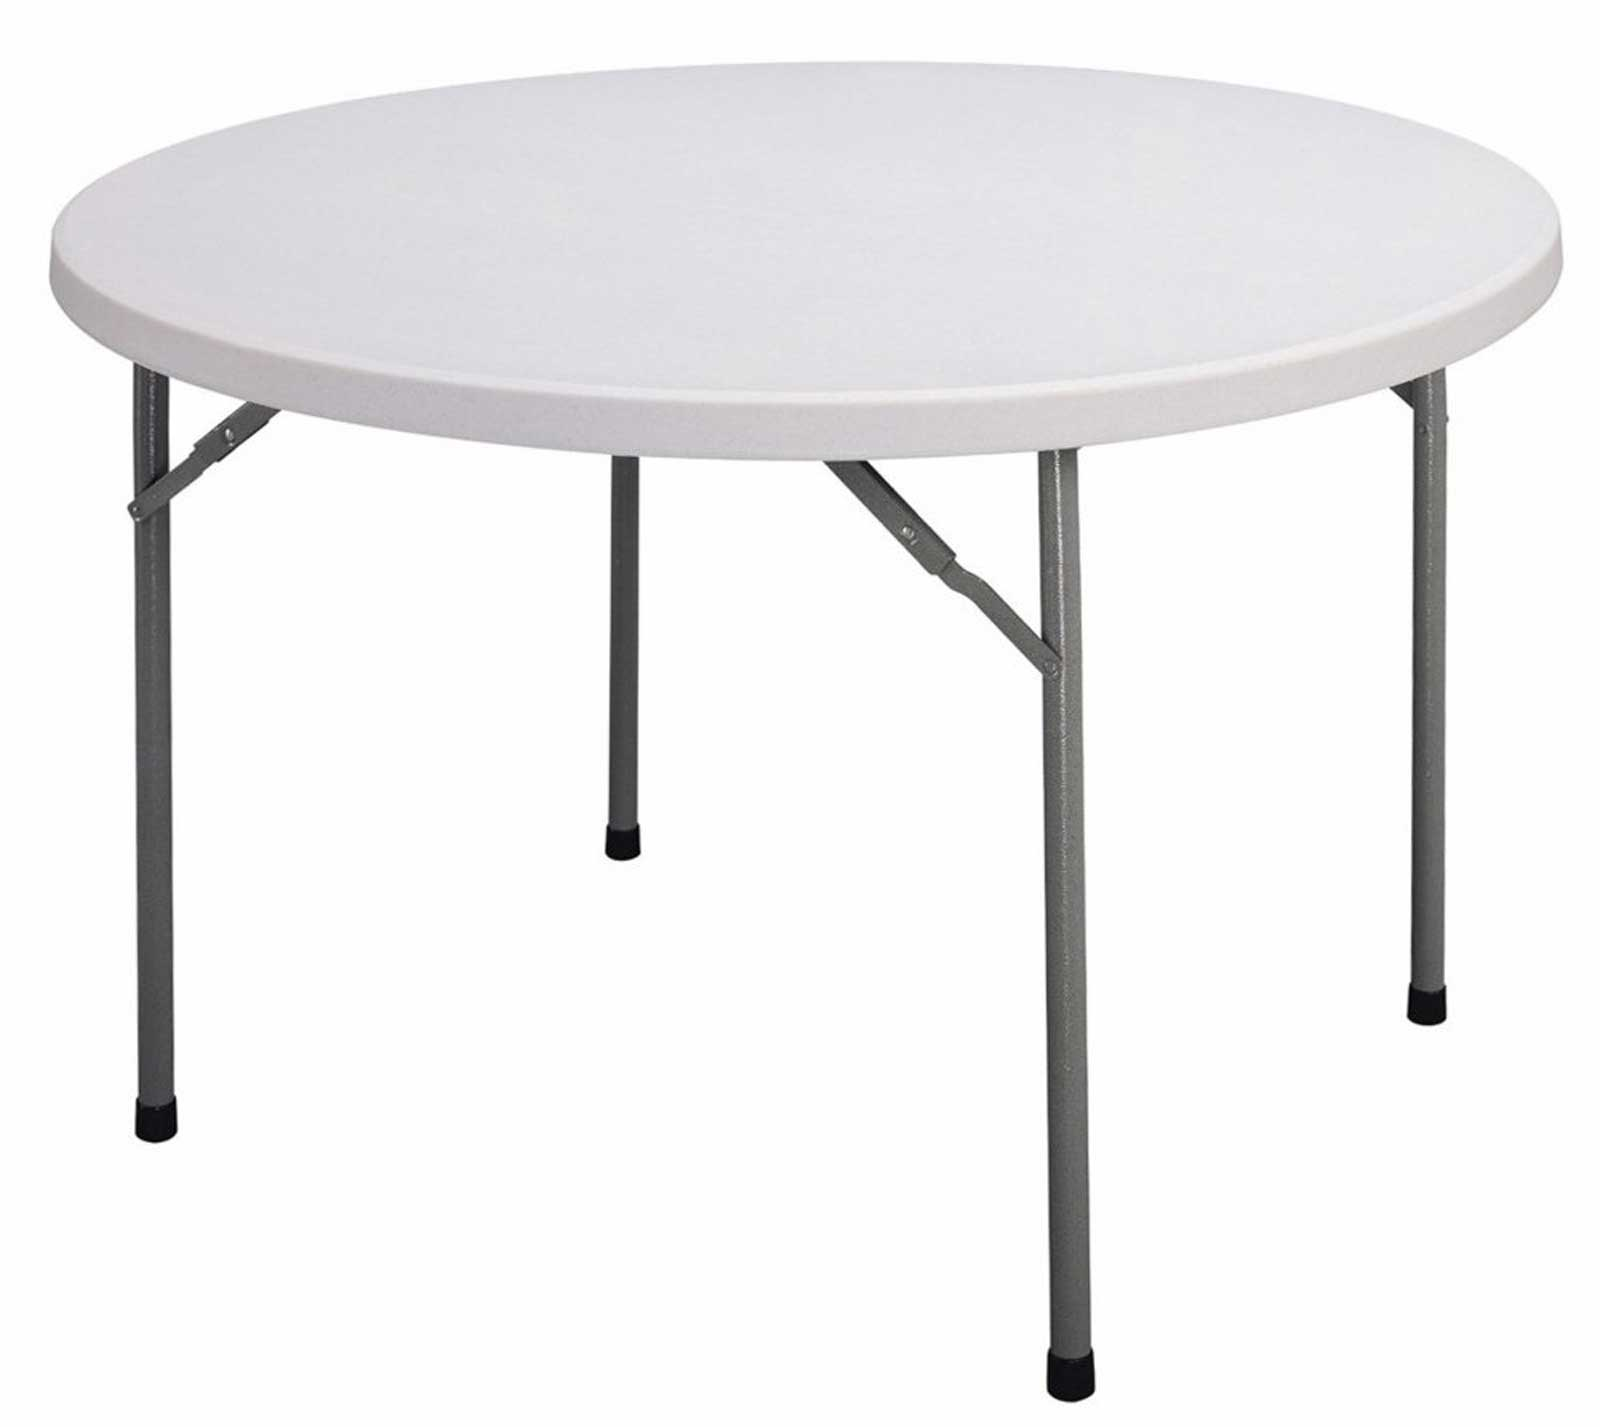 Plastic Folding Table : Clean Plastic Folding Table with Blow Molded Design